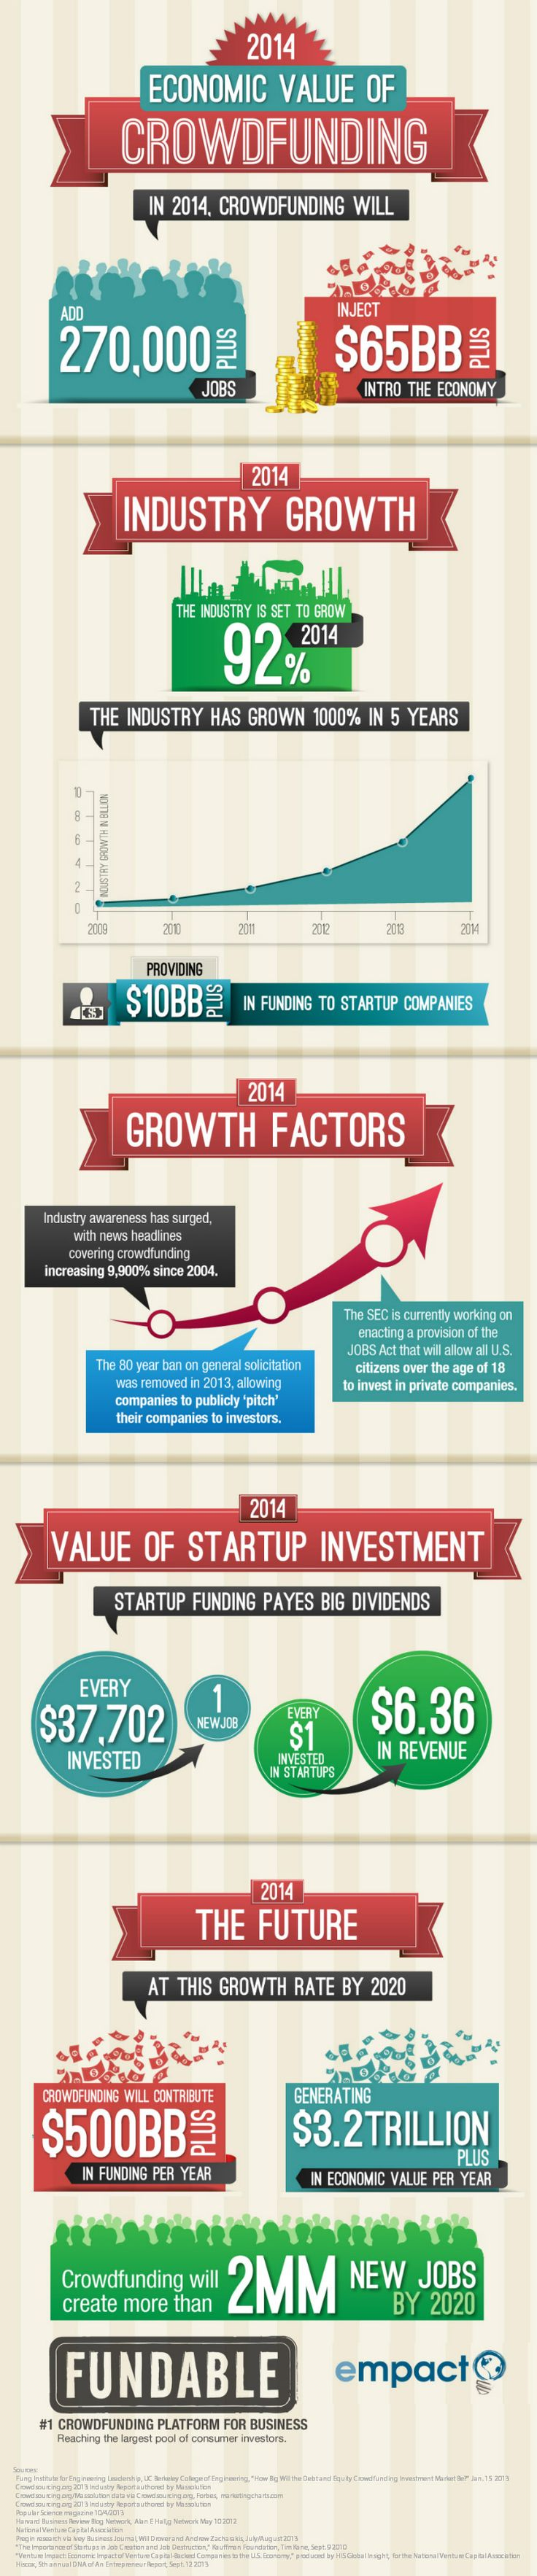 Crowdfunding Seen Providing $65 Billion Boost To The Global Economy In 2014  #Infographic #econdev